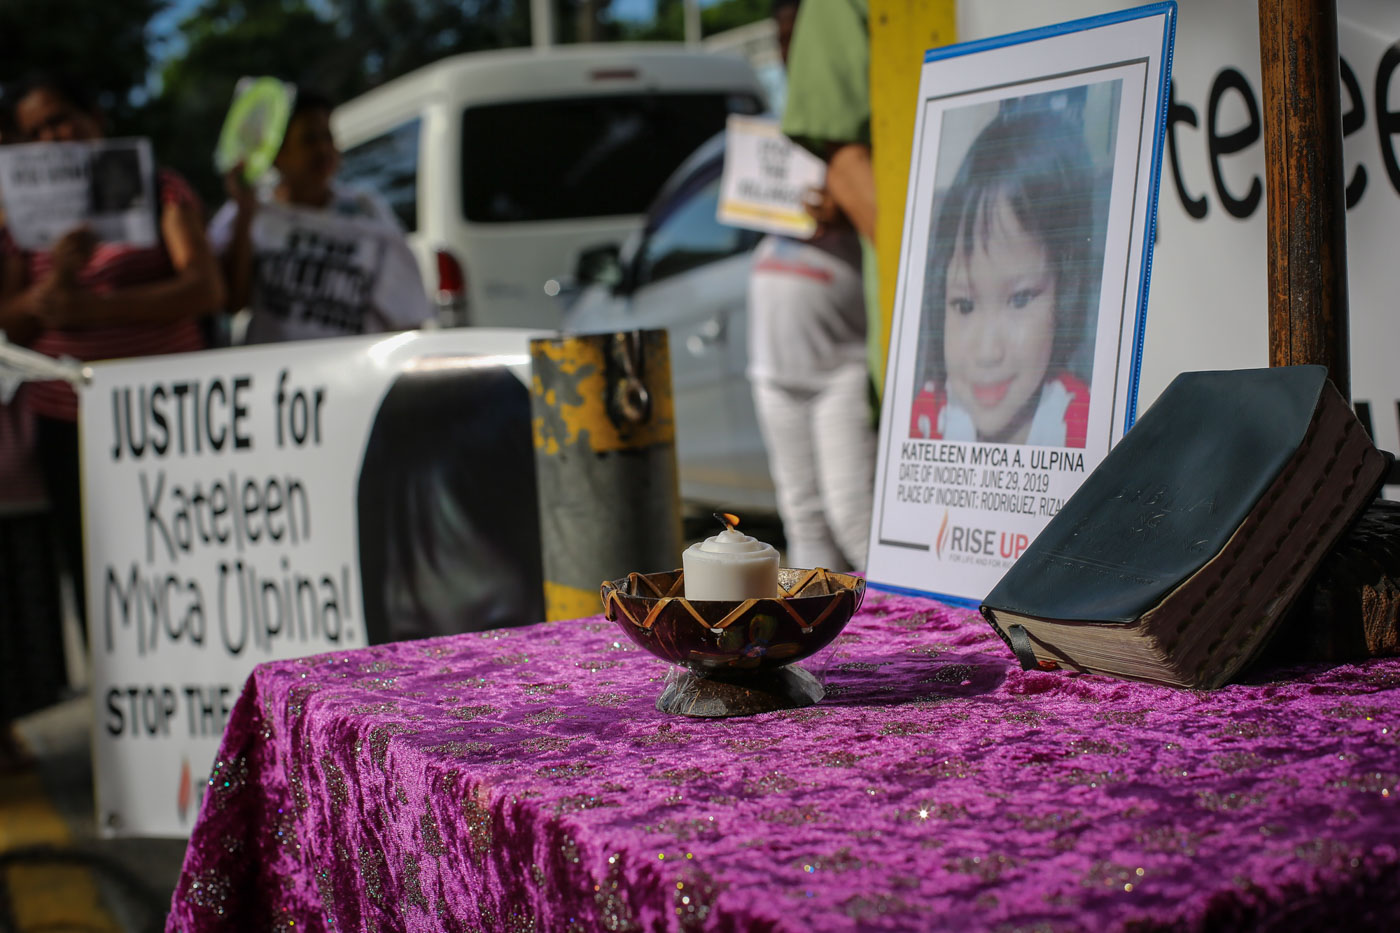 DEFENSELESS. Myca Ulpina's mother claims she was killed defenseless. Photo by Jire Carreon/Rappler